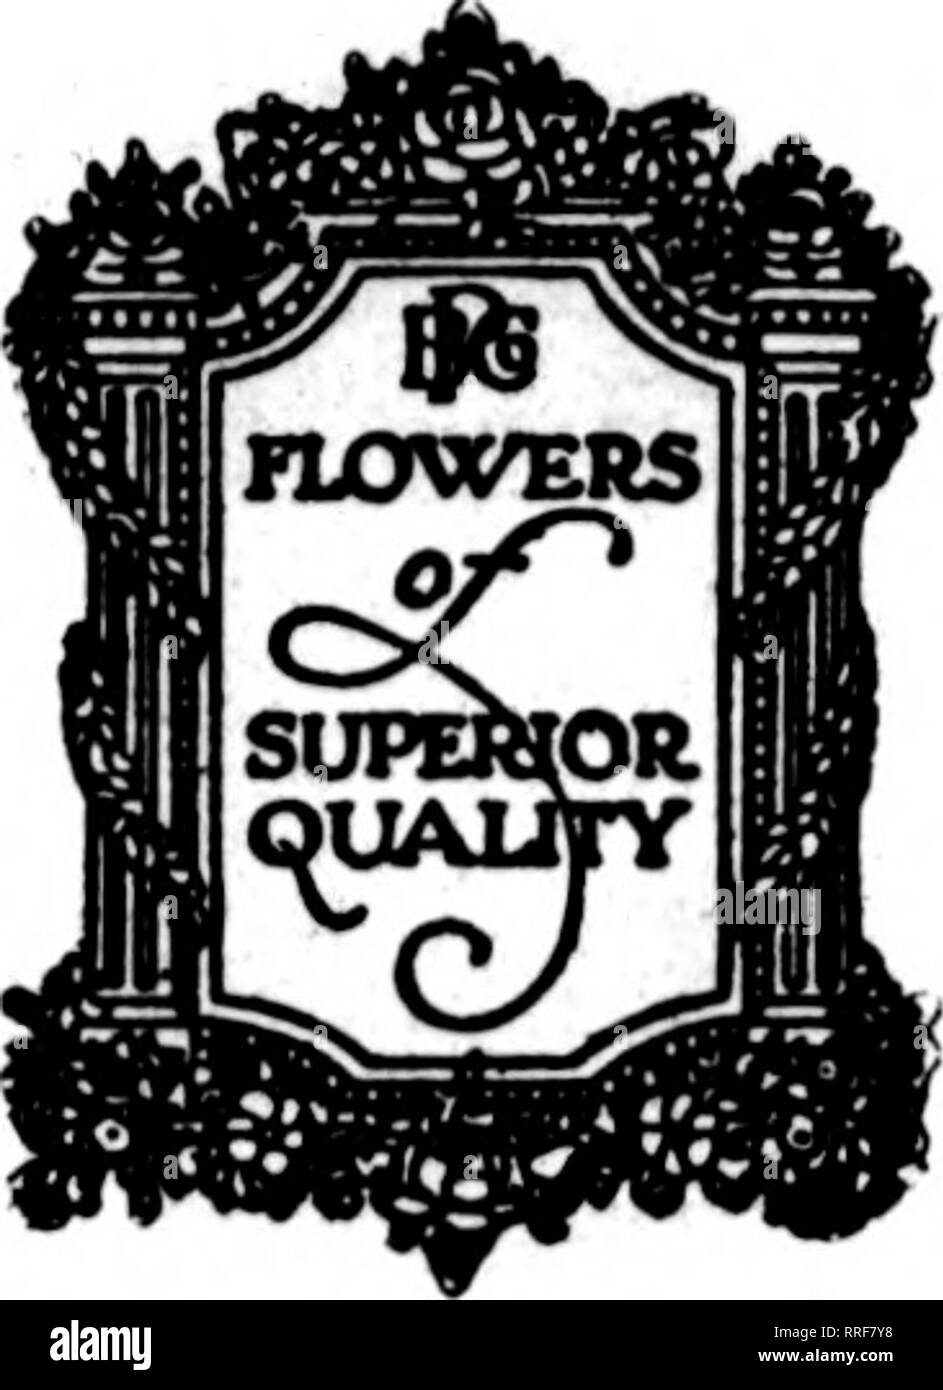 . Florists' review [microform]. Floriculture. Mabch 24. 1921. The Rorists^ Review. Use Poehlmann's VALLEY CATTLEYAS WHITE ROSES SWEET PEAS FARLEYENSE ADIANTUM For Your Spring Weddings POEHLMANN BROS. CO., Long Distance Phone Randolph 35 CHICAGO f)H t<i 74 East Randolph Street -'^ i.-^^' ? vt.: The Latgeat Growers .?^.^^'' of Flow^f in the l^orld. Please note that these images are extracted from scanned page images that may have been digitally enhanced for readability - coloration and appearance of these illustrations may not perfectly resemble the original work.. Chicago : Florists' Pub. Co - Stock Image